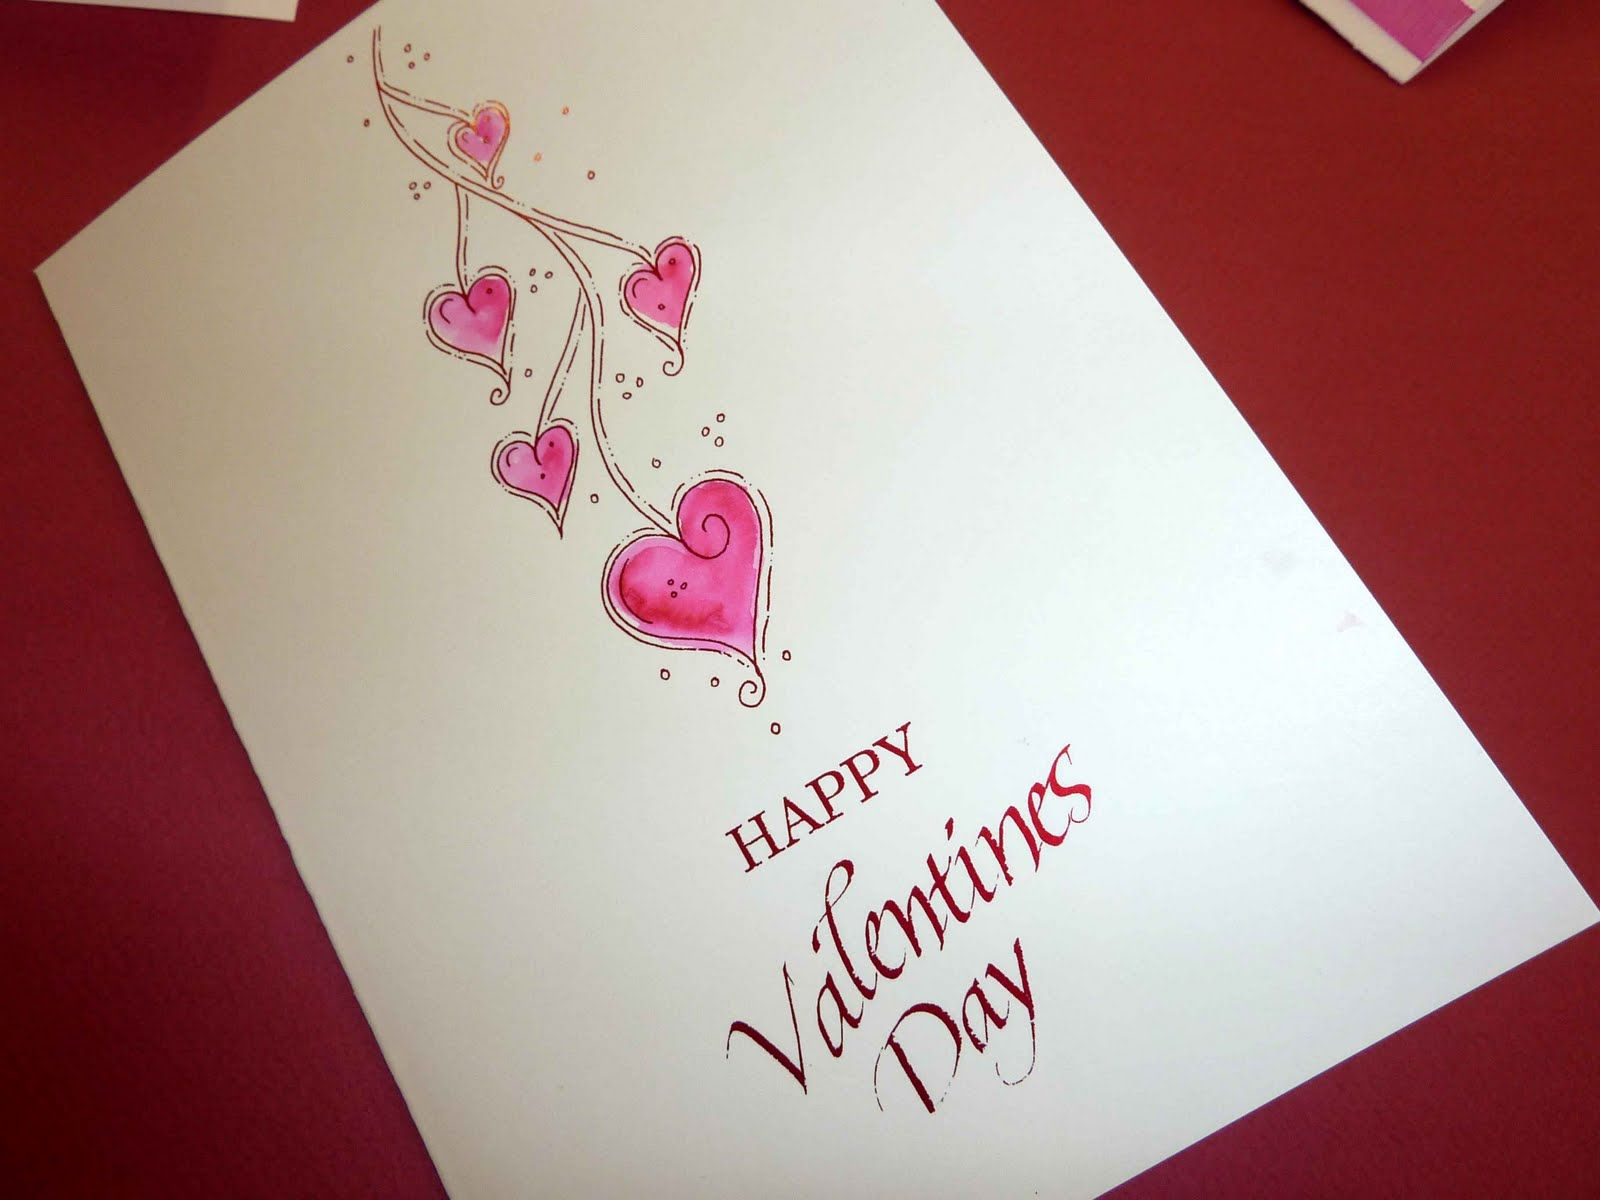 Handmade Valentines Day Cards For Friendshandmade Valentines Day – How to Make an Awesome Valentines Day Card